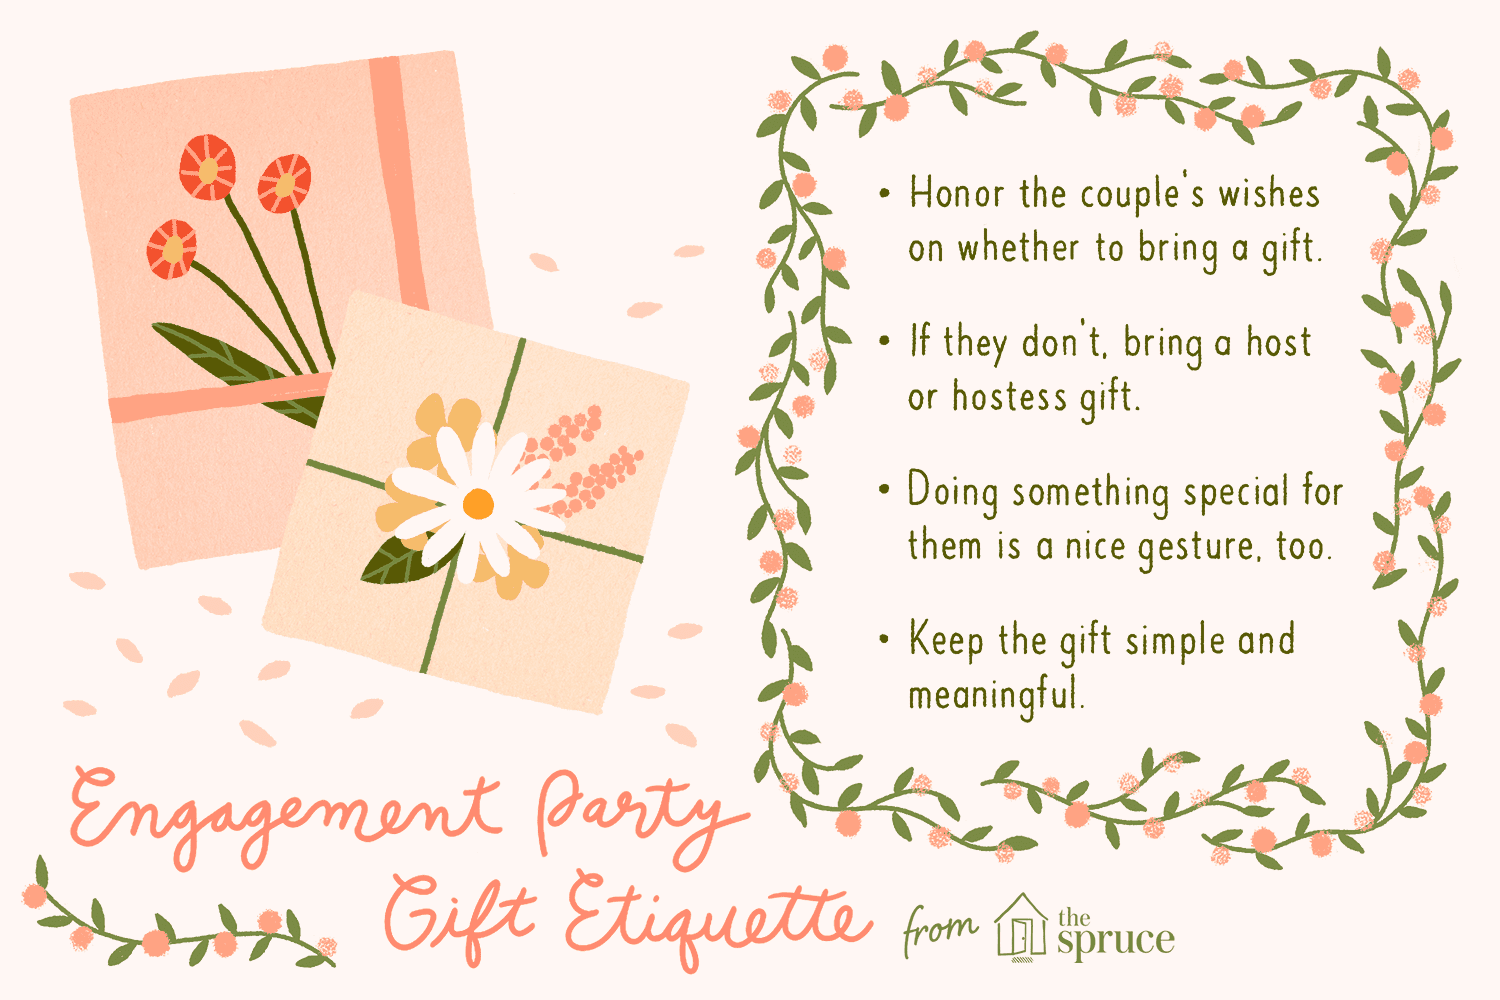 gift tips for the engagement party